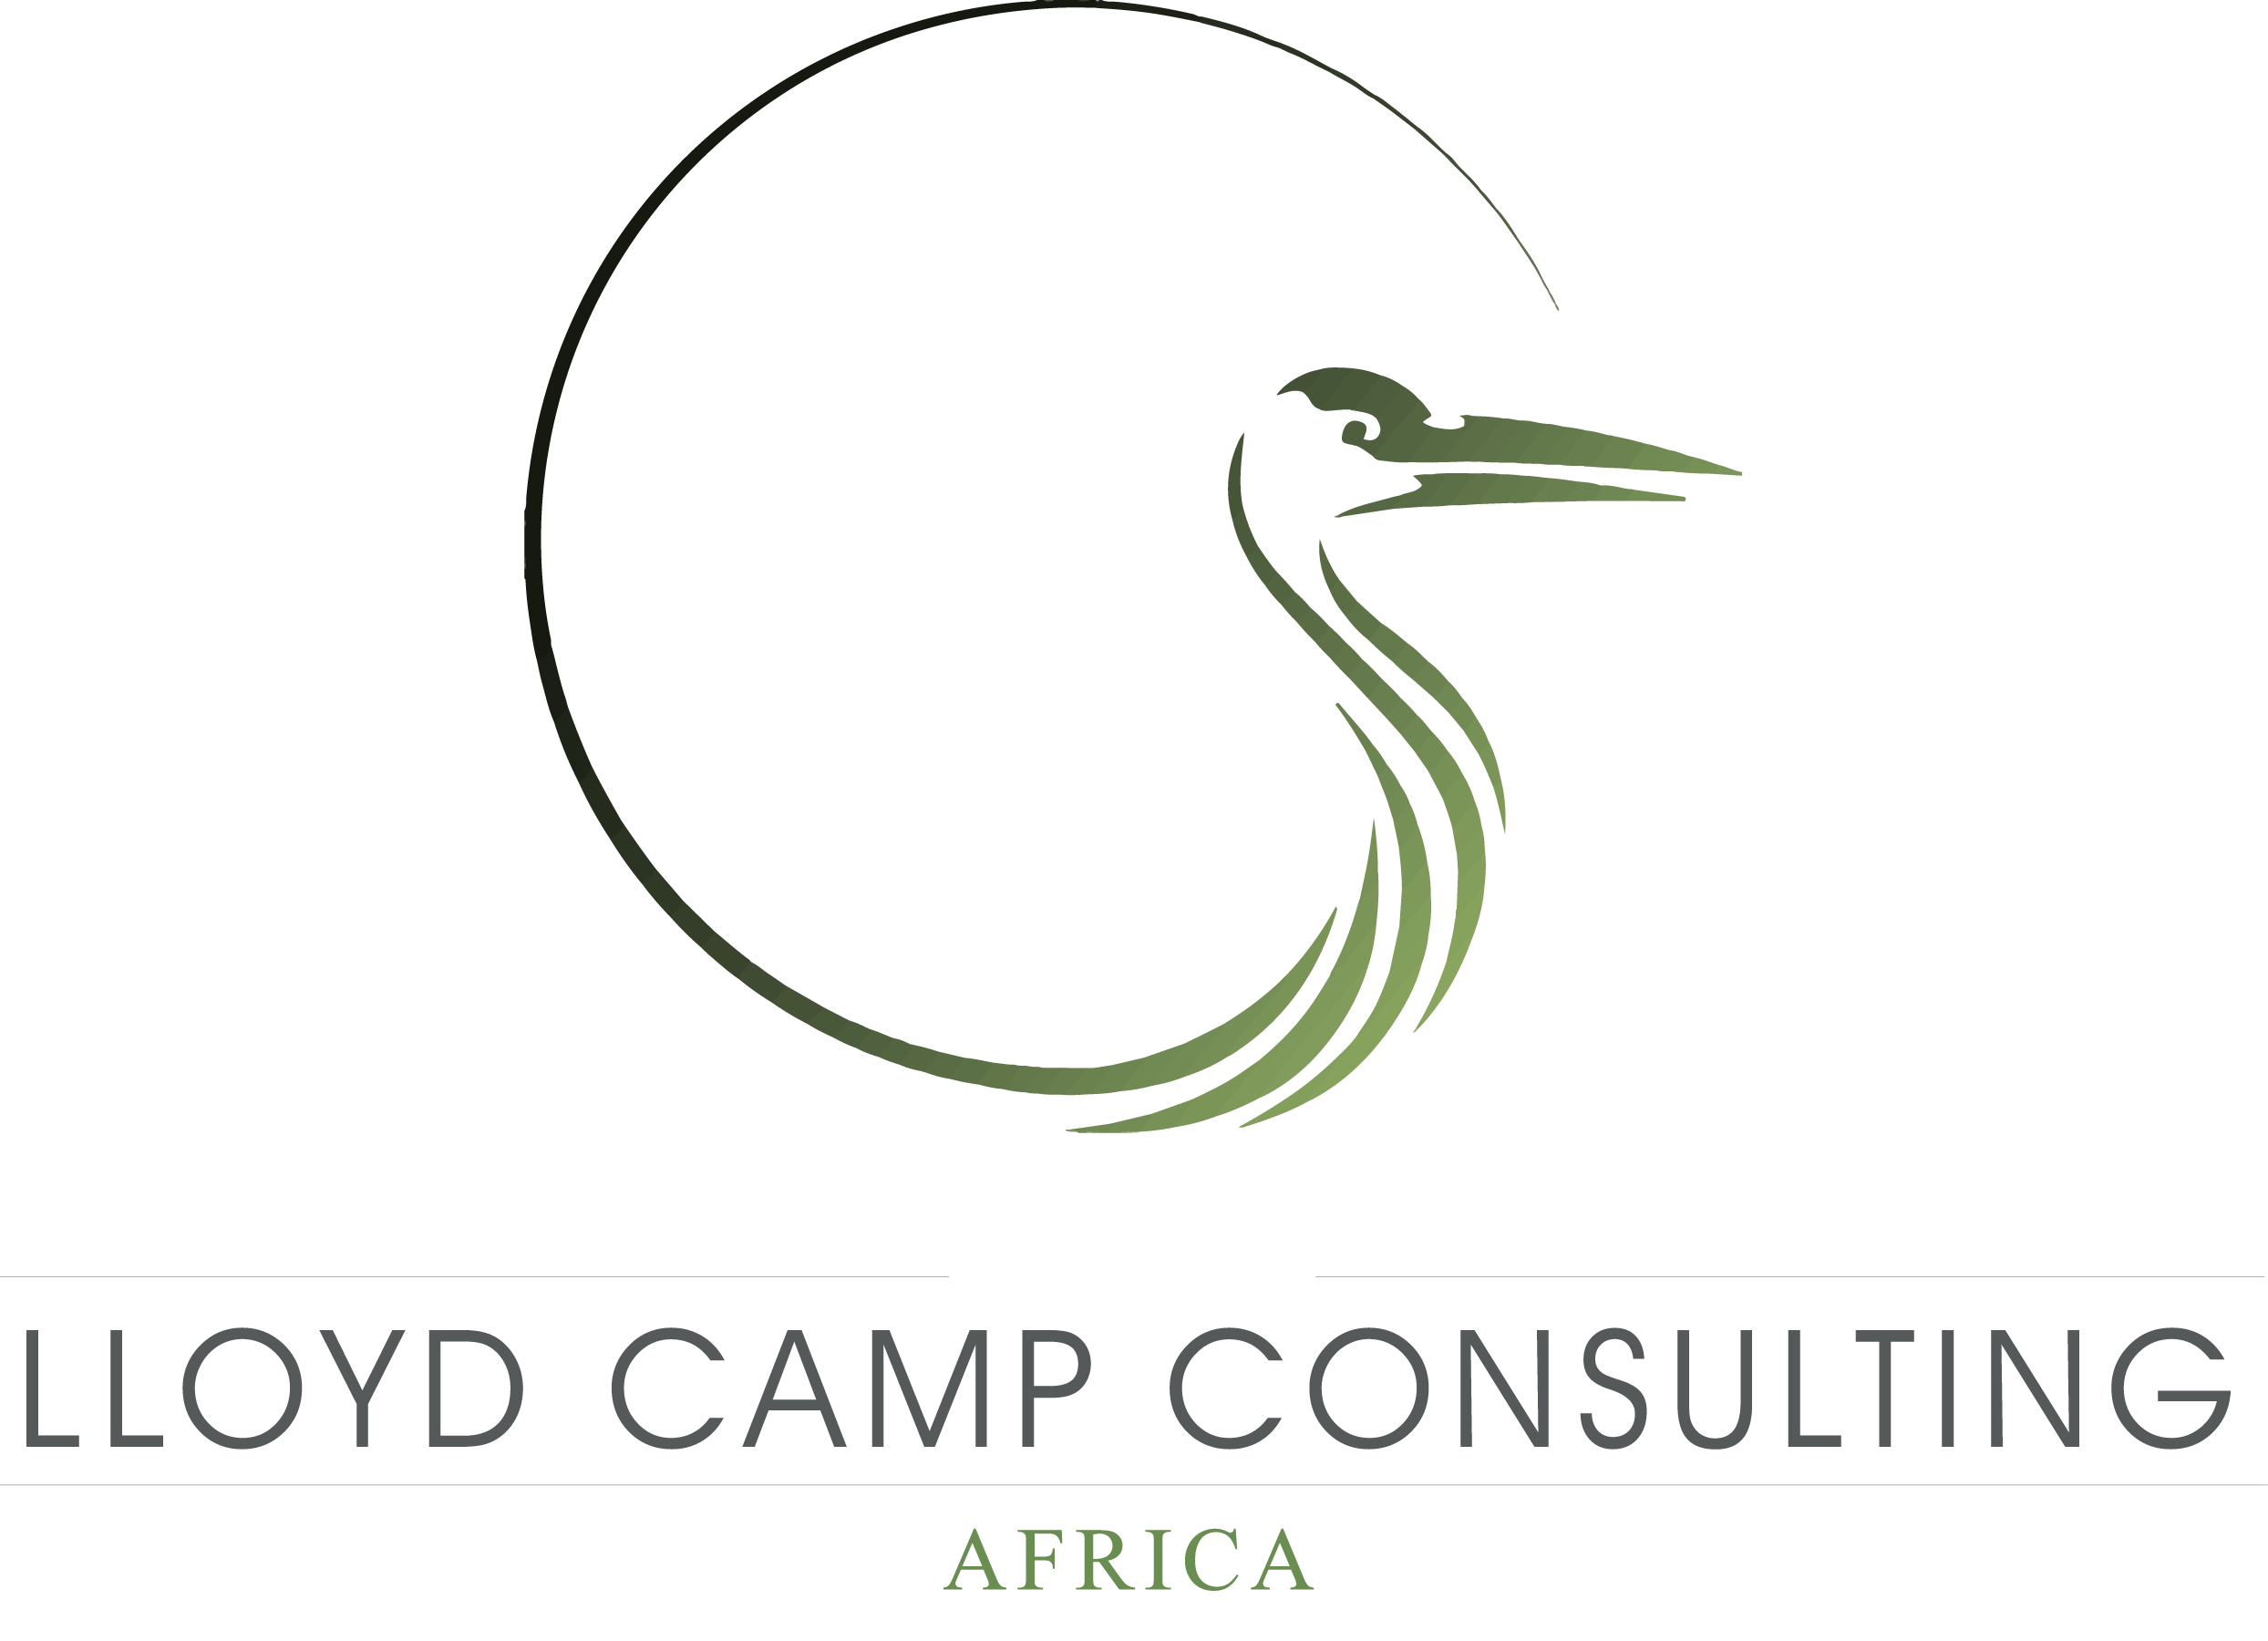 Lloyd Camp Consulting Africa